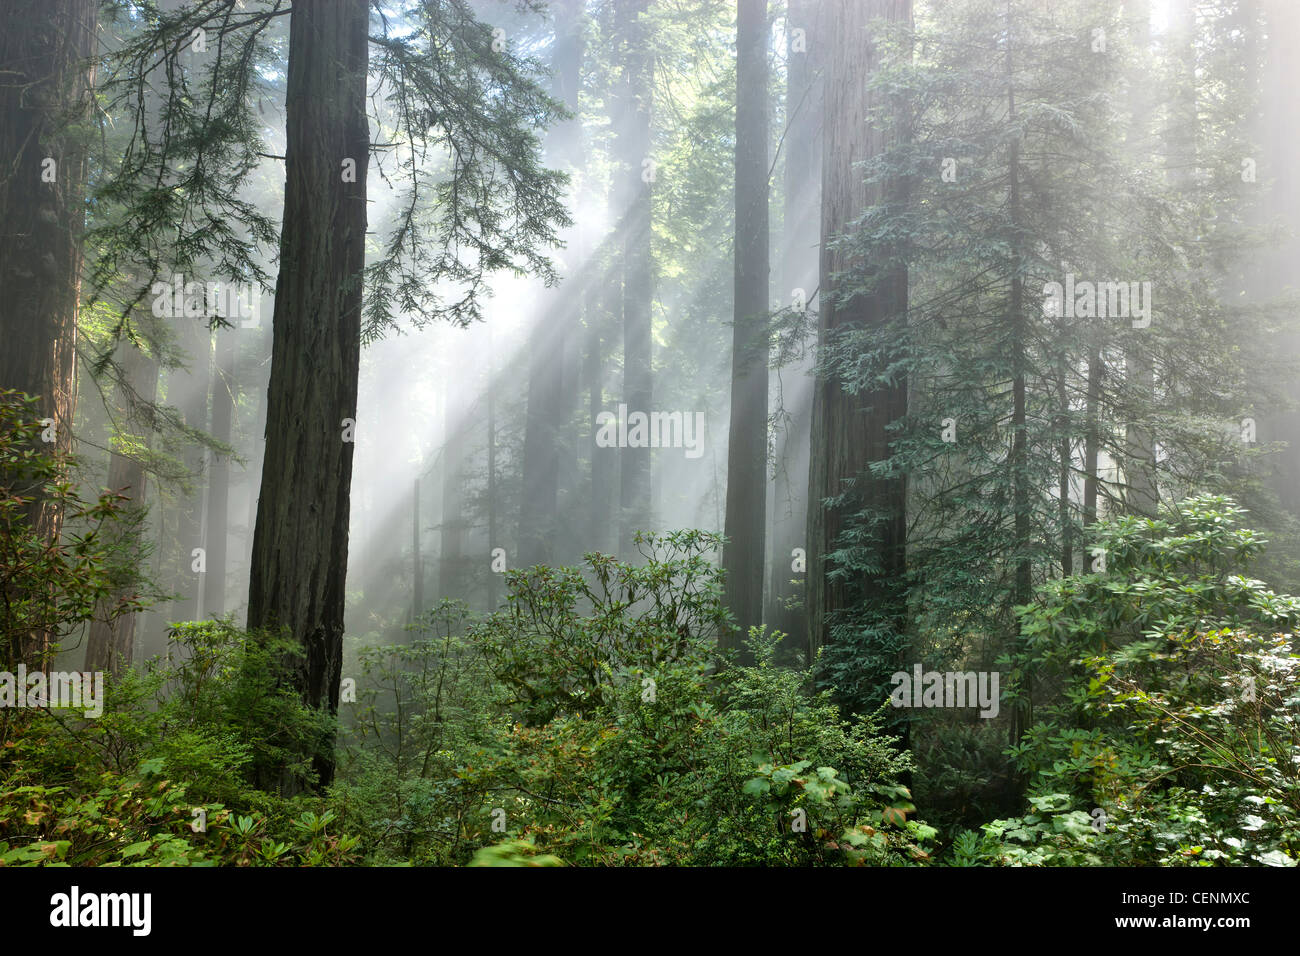 Redwood forest, sunrays passing through early morning fog. - Stock Image